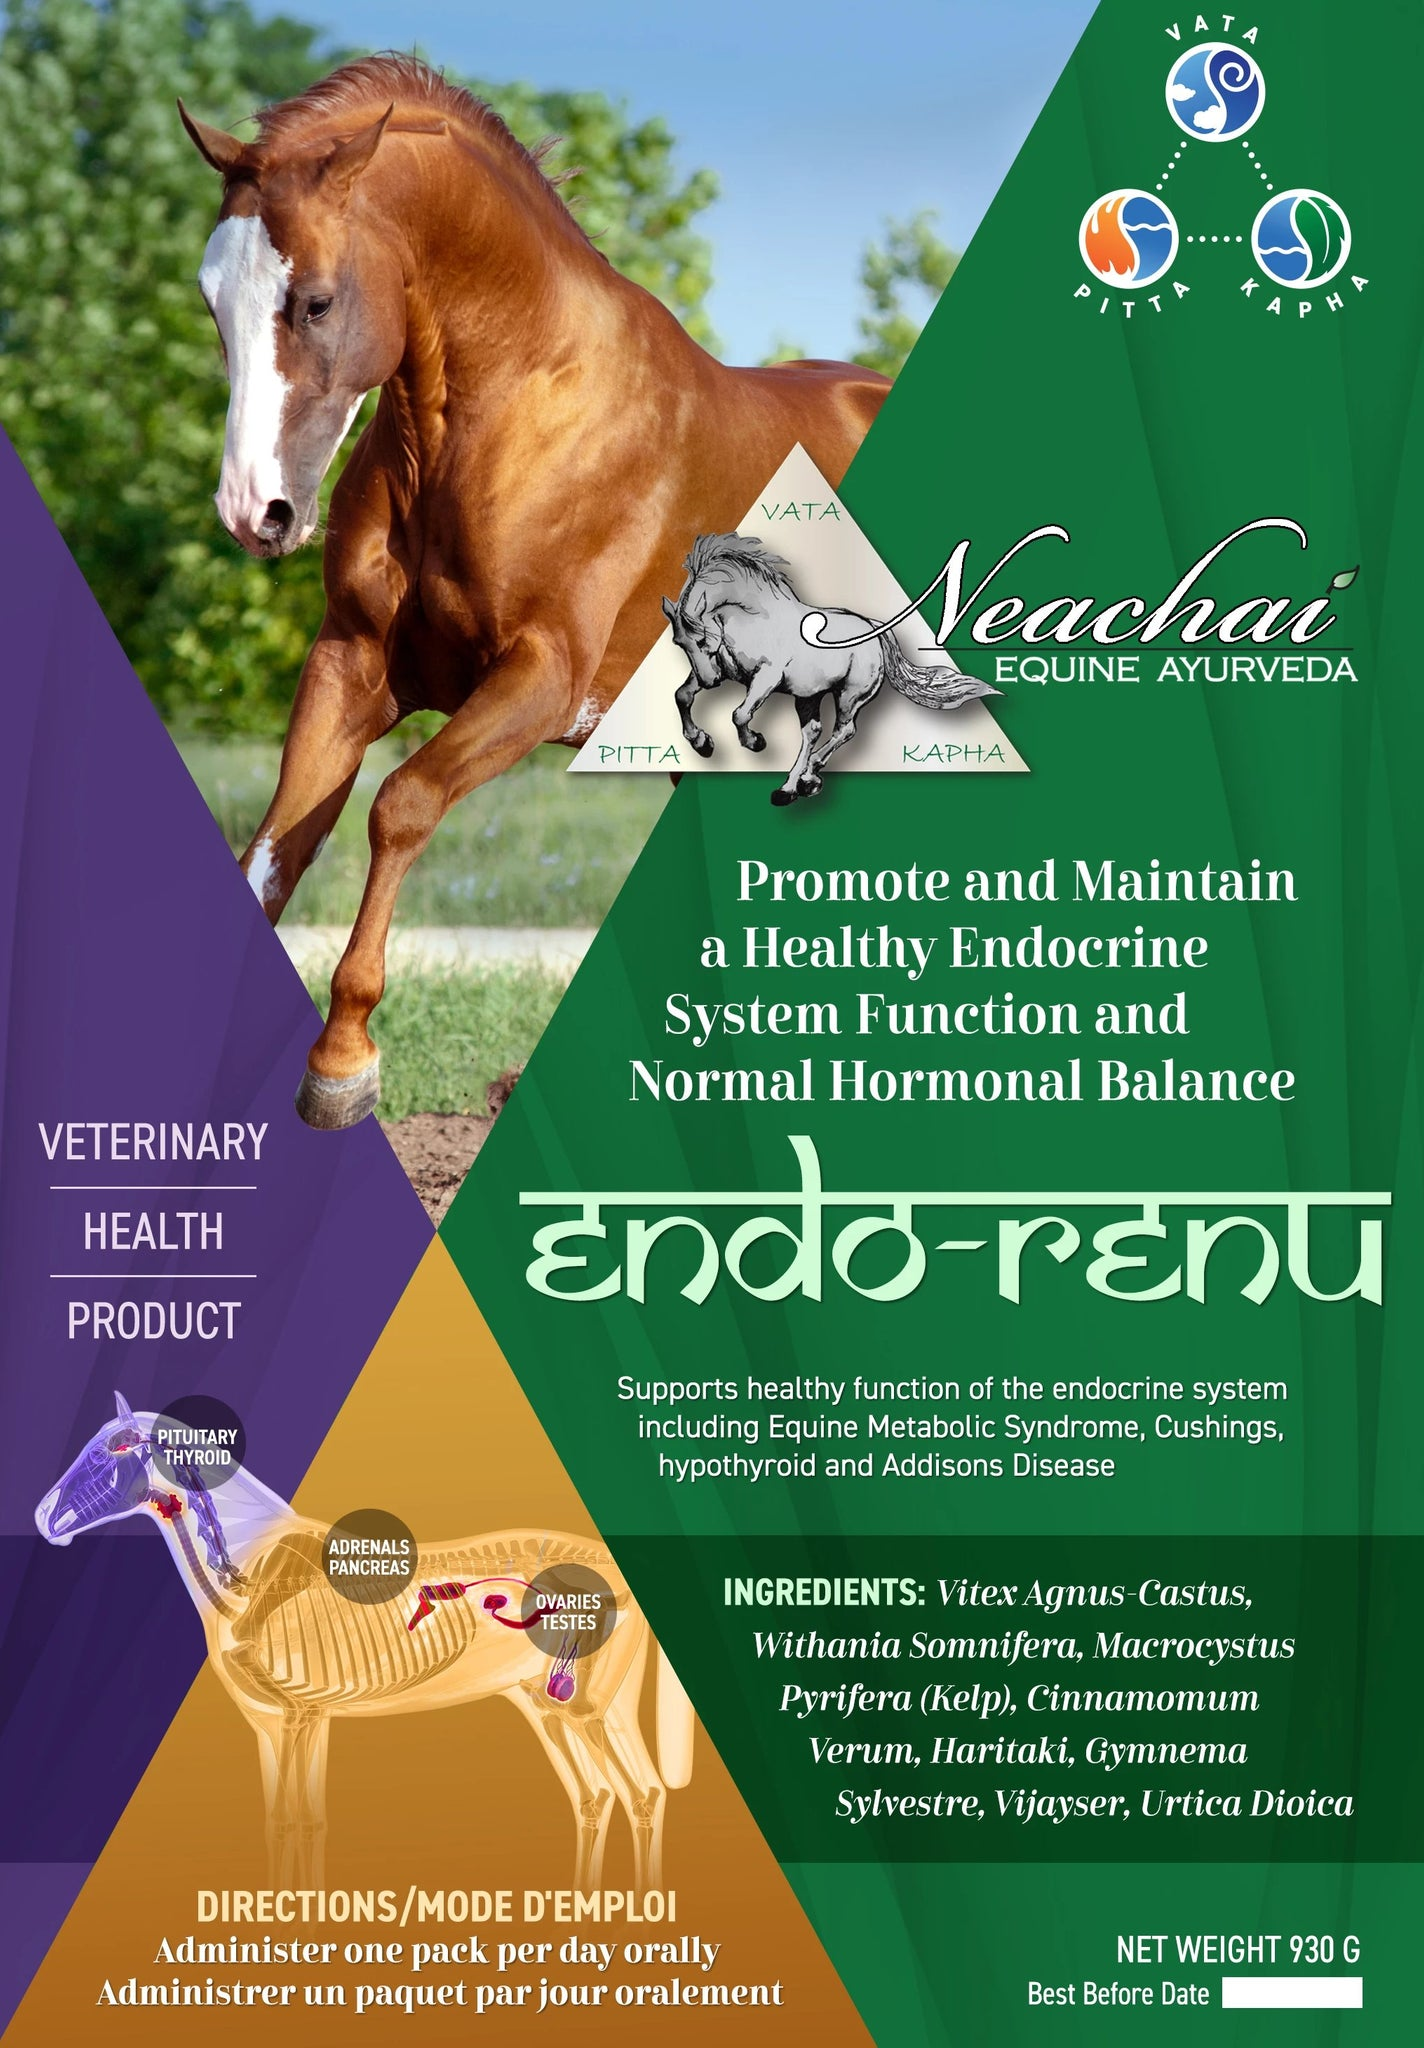 Neachai herbal supplements. To promote and maintain a healthy endocrine system function and normal hormonal balance.